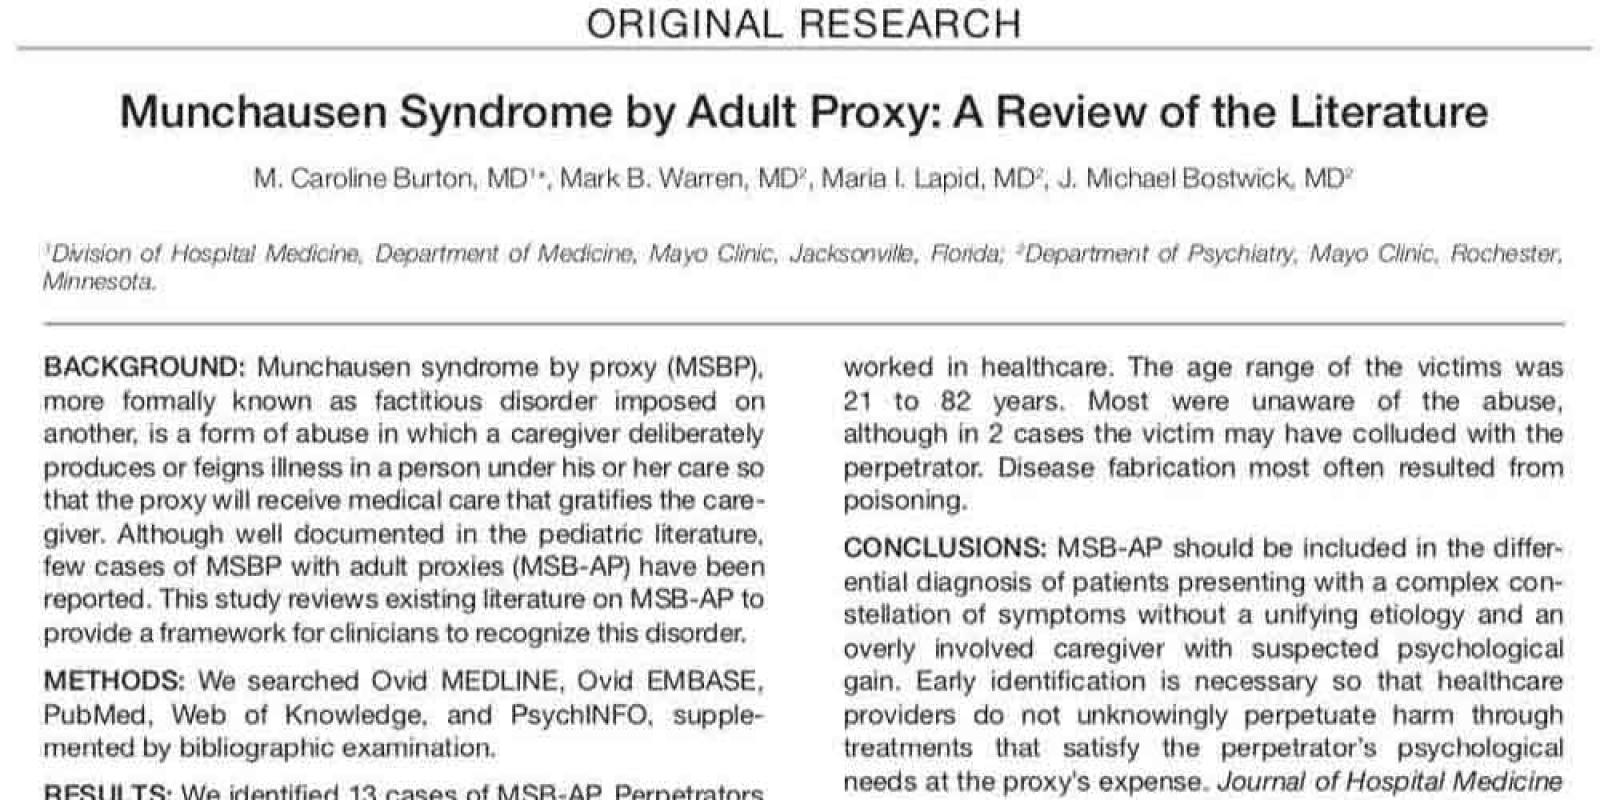 Munchausen Syndrome by Adult Proxy: A Review of the Literature